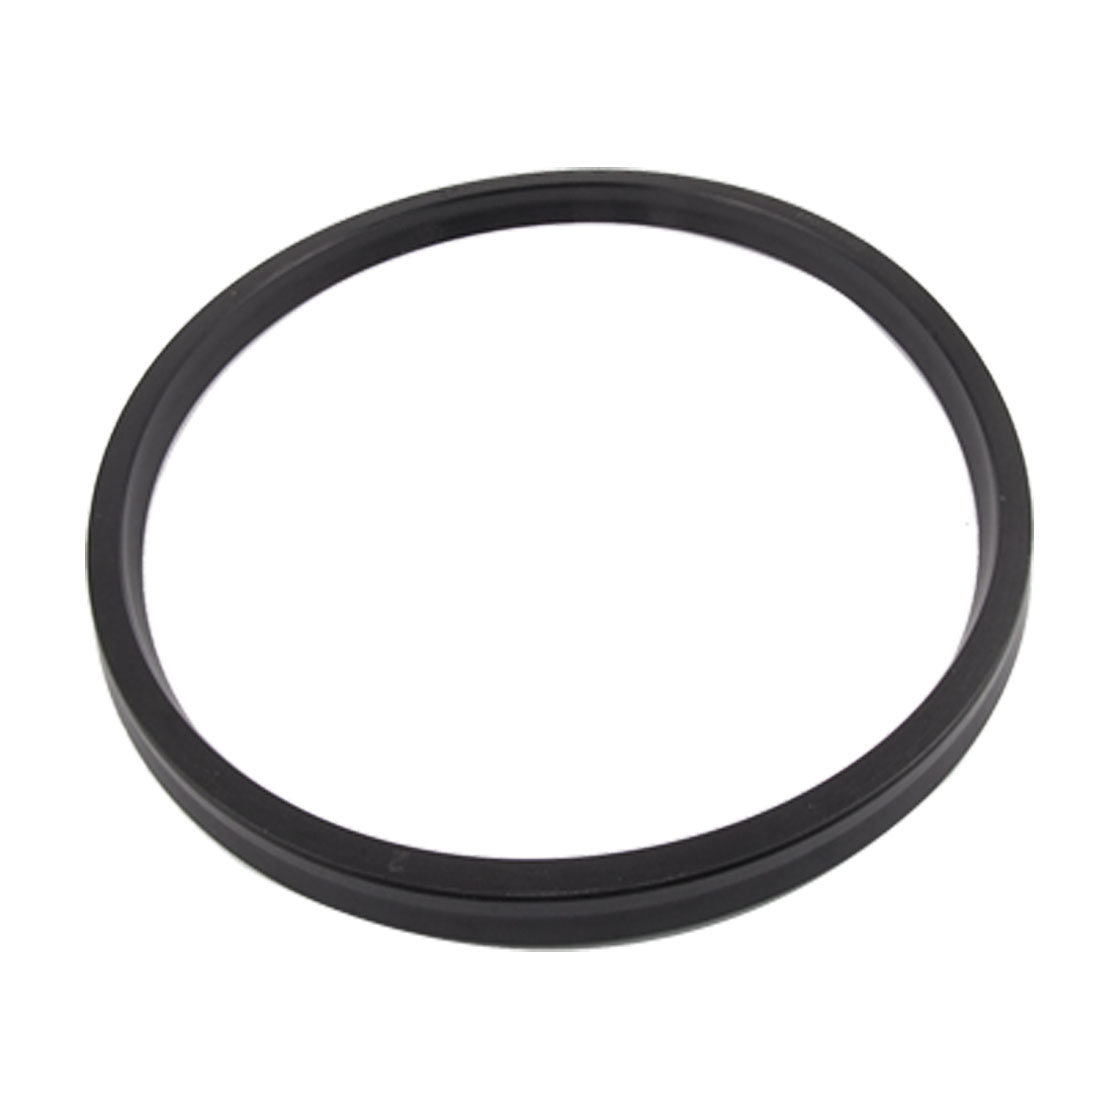 USH 160mm x 175mm x 9mm Rubber Oil Seal Ring for Automobile Pump